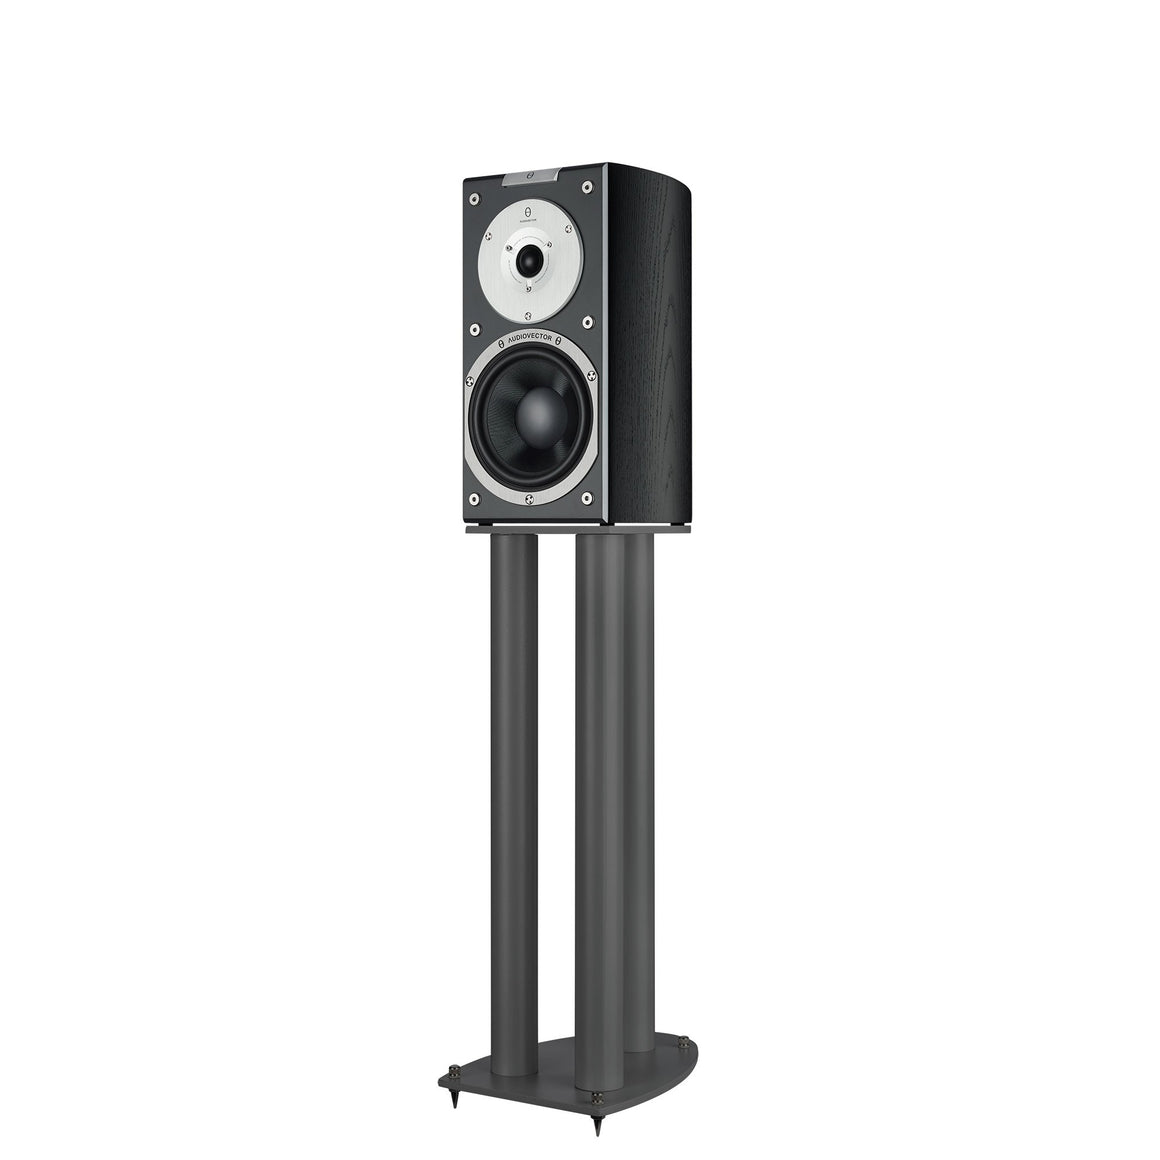 Audiovector Si 1 Black Ash Bookshelf Speakers at Melbourne Hi Fi, Australia